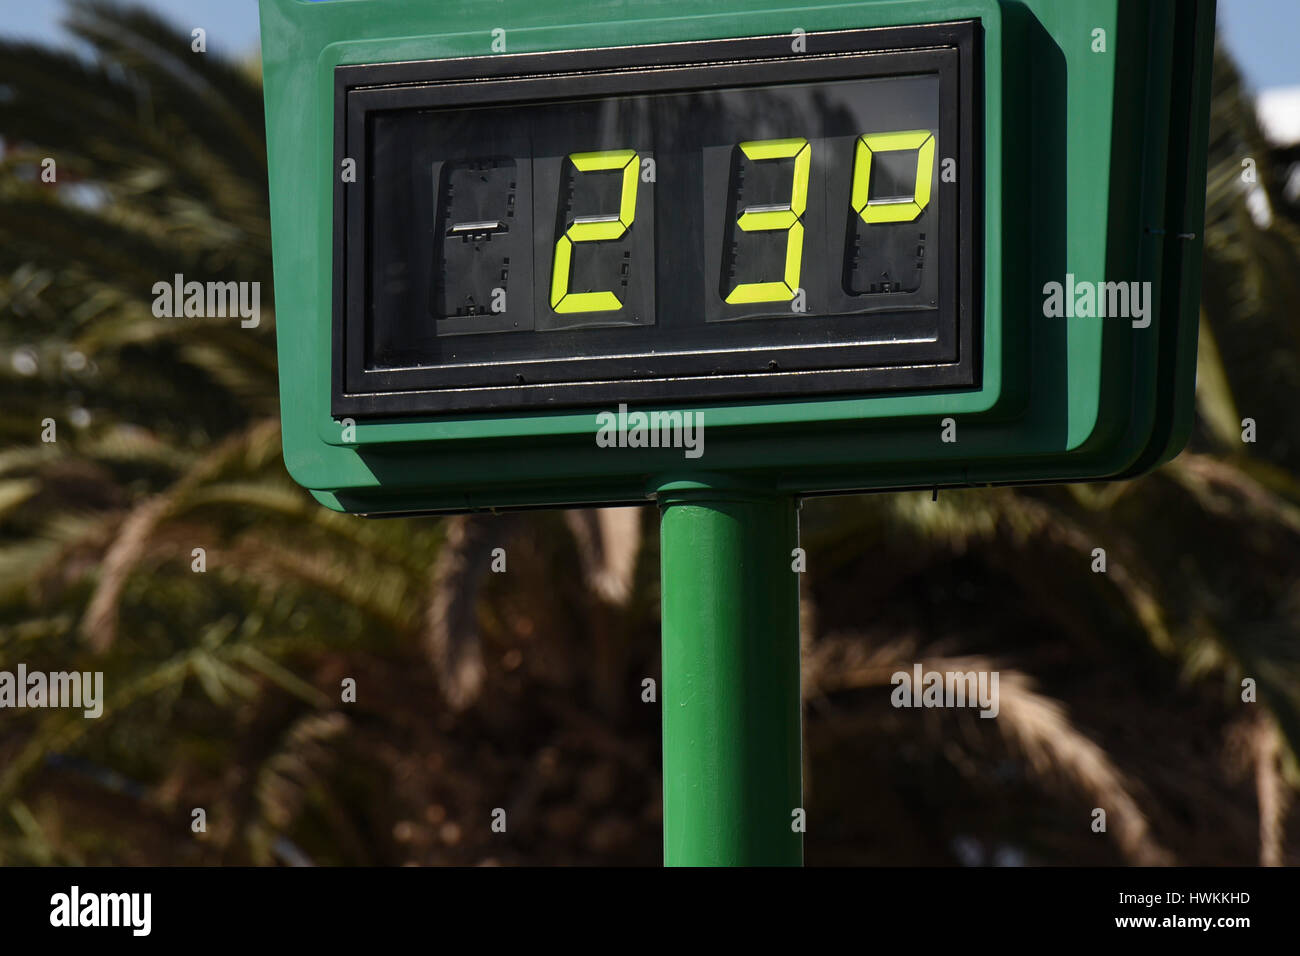 Information sign providing real time temperature in country - Stock Image